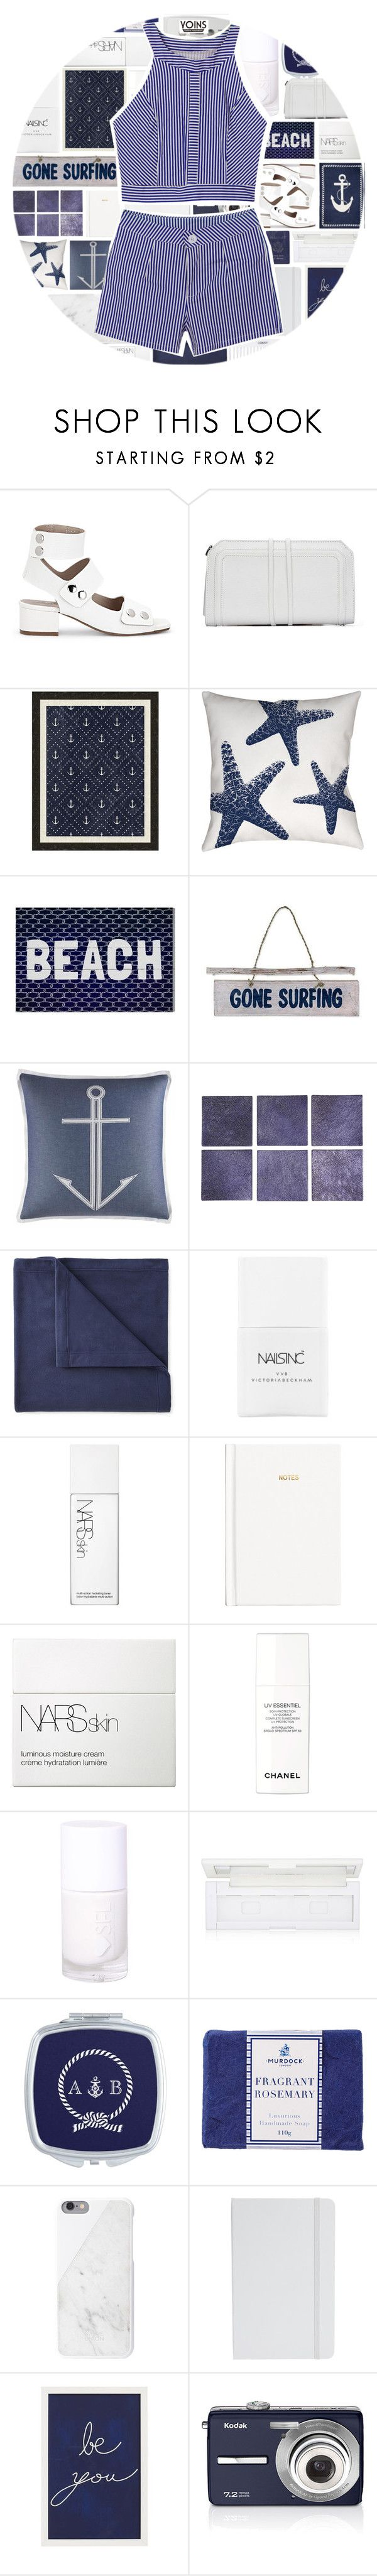 """YOINS"" by xgracieeee ❤ liked on Polyvore featuring Pottery Barn, Thumbprintz, NOVICA, Nautica, Undercover, JCPenney Home, Passport, Nails Inc., NARS Cosmetics and H&M"